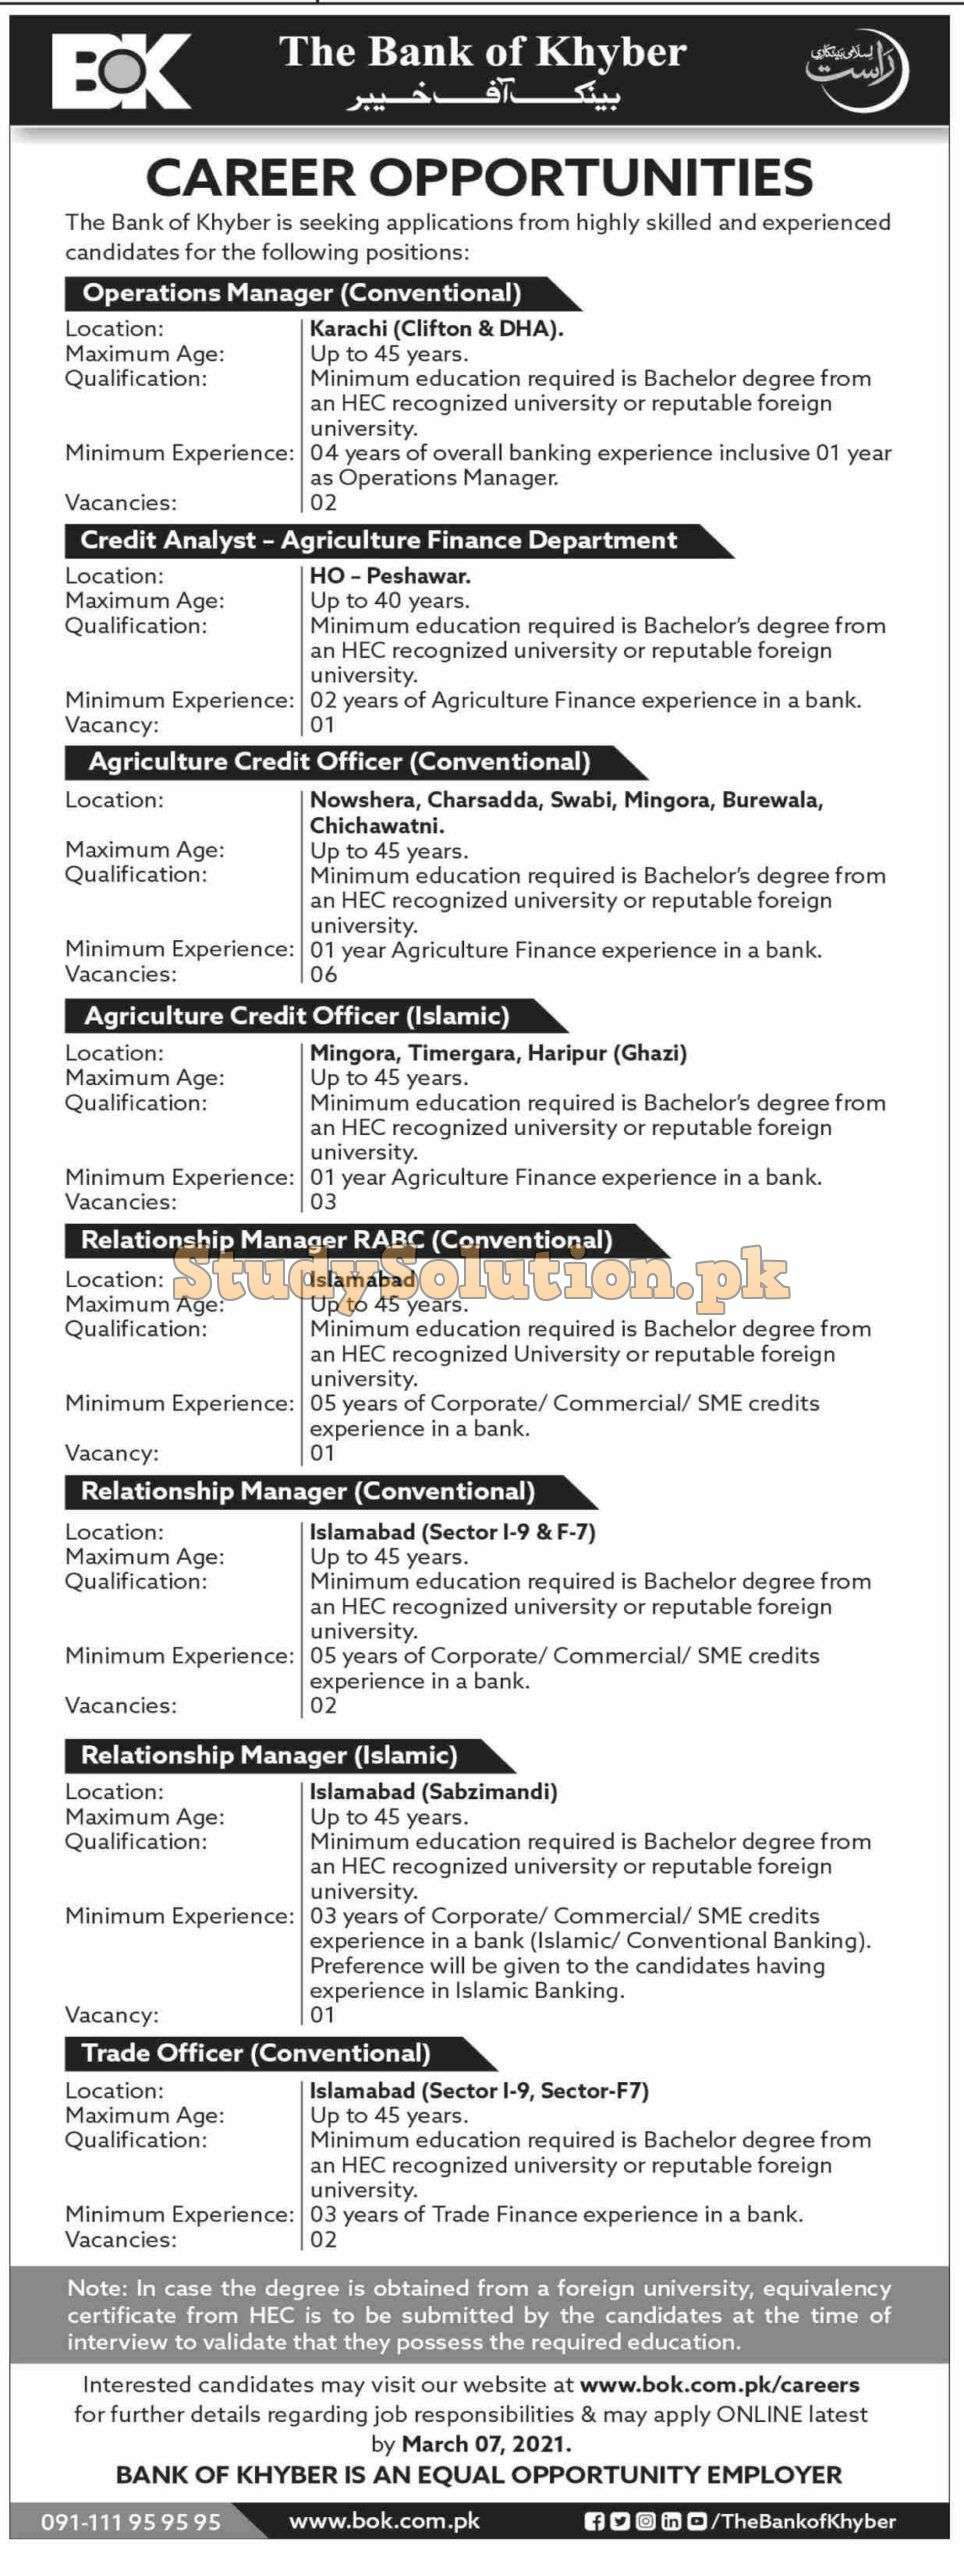 The Bank of Khyber Latest Jobs 2021 Advertisement